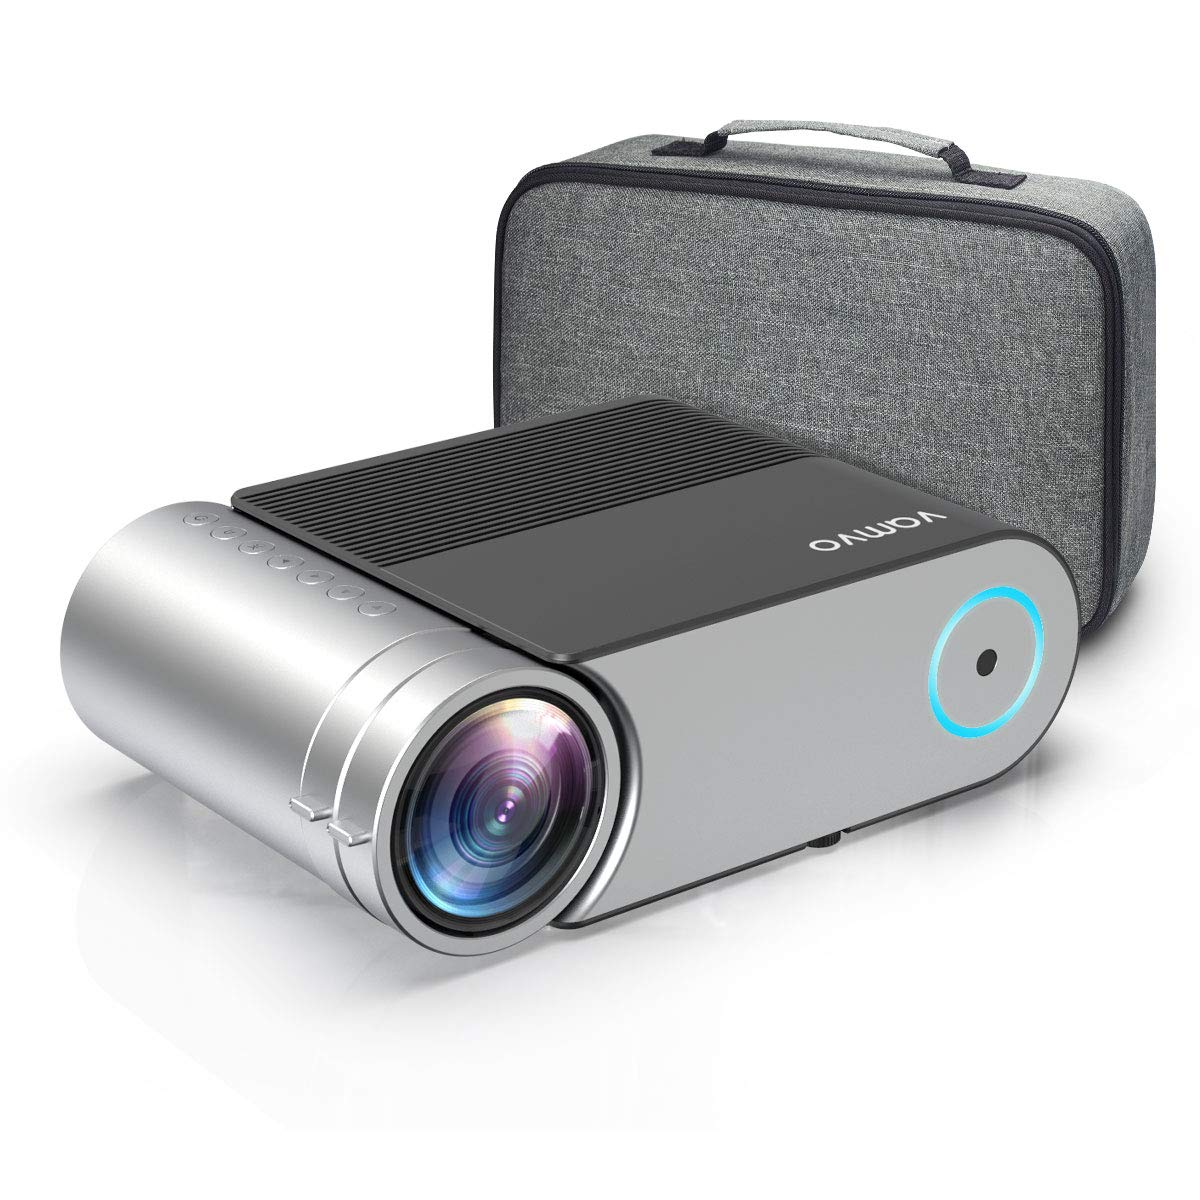 Mini Projector, Vamvo L4200 Portable Video Projector, Full HD 1080P 200'' Display Supported; Outdoor Movie Projector 3800 Lux with 50,000 Hrs, Compatible with Fire TV Stick, PS4, HDMI, VGA, AV and USB